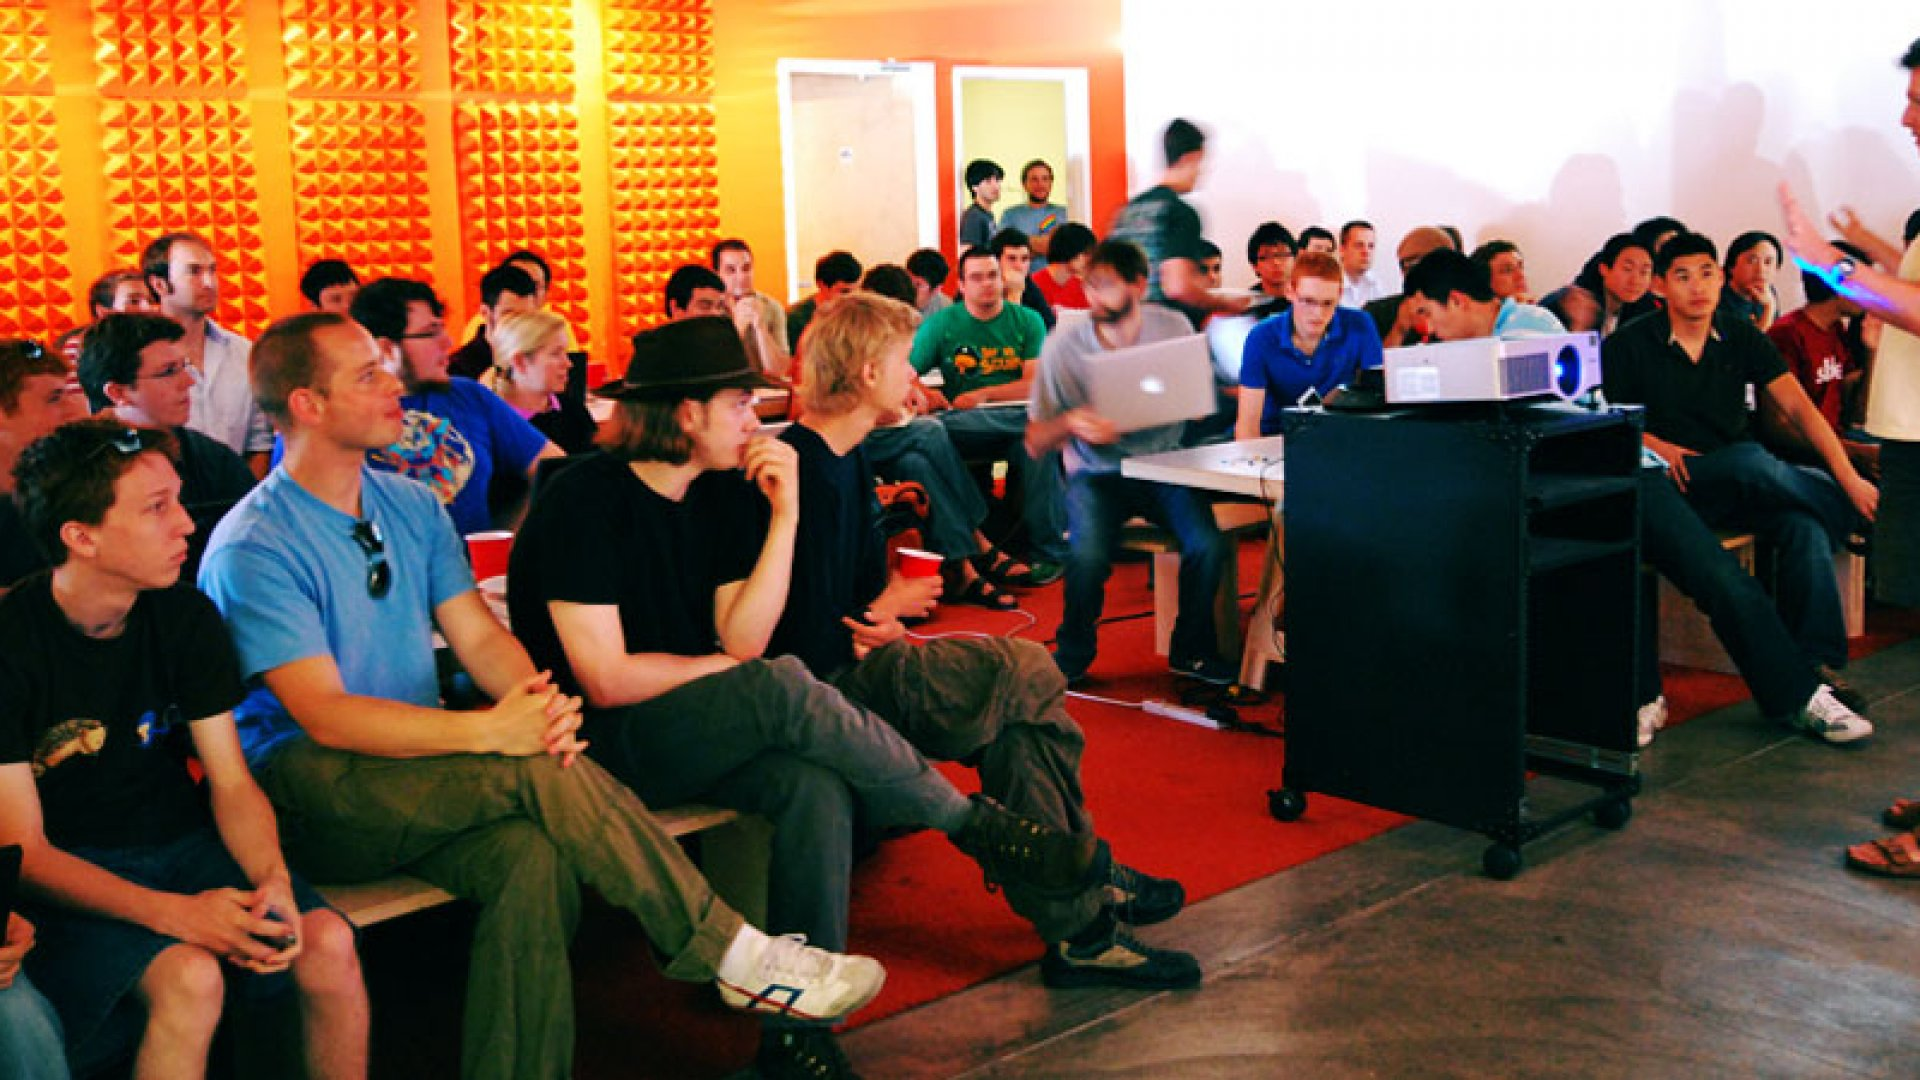 4 Hot Trends From Y Combinator's Demo Day